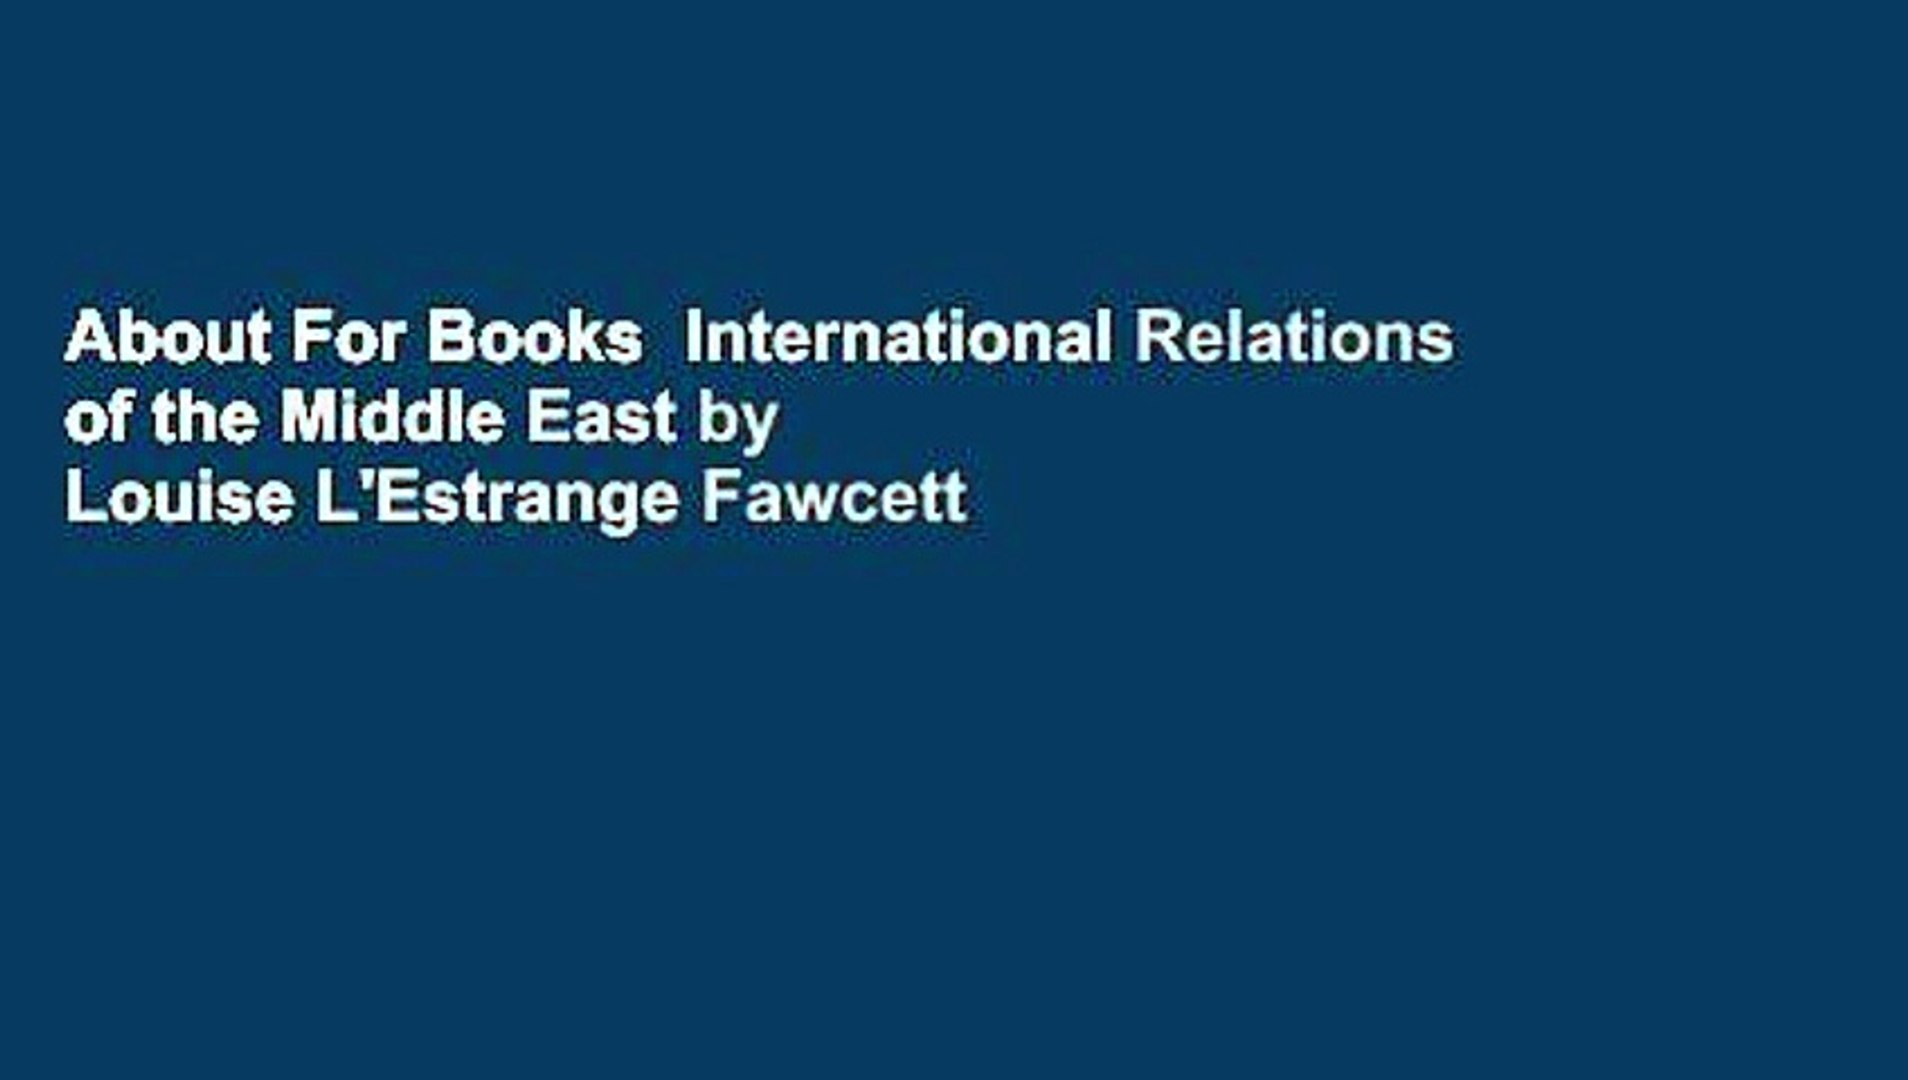 About For Books International Relations of the Middle East by Louise  L'Estrange Fawcett